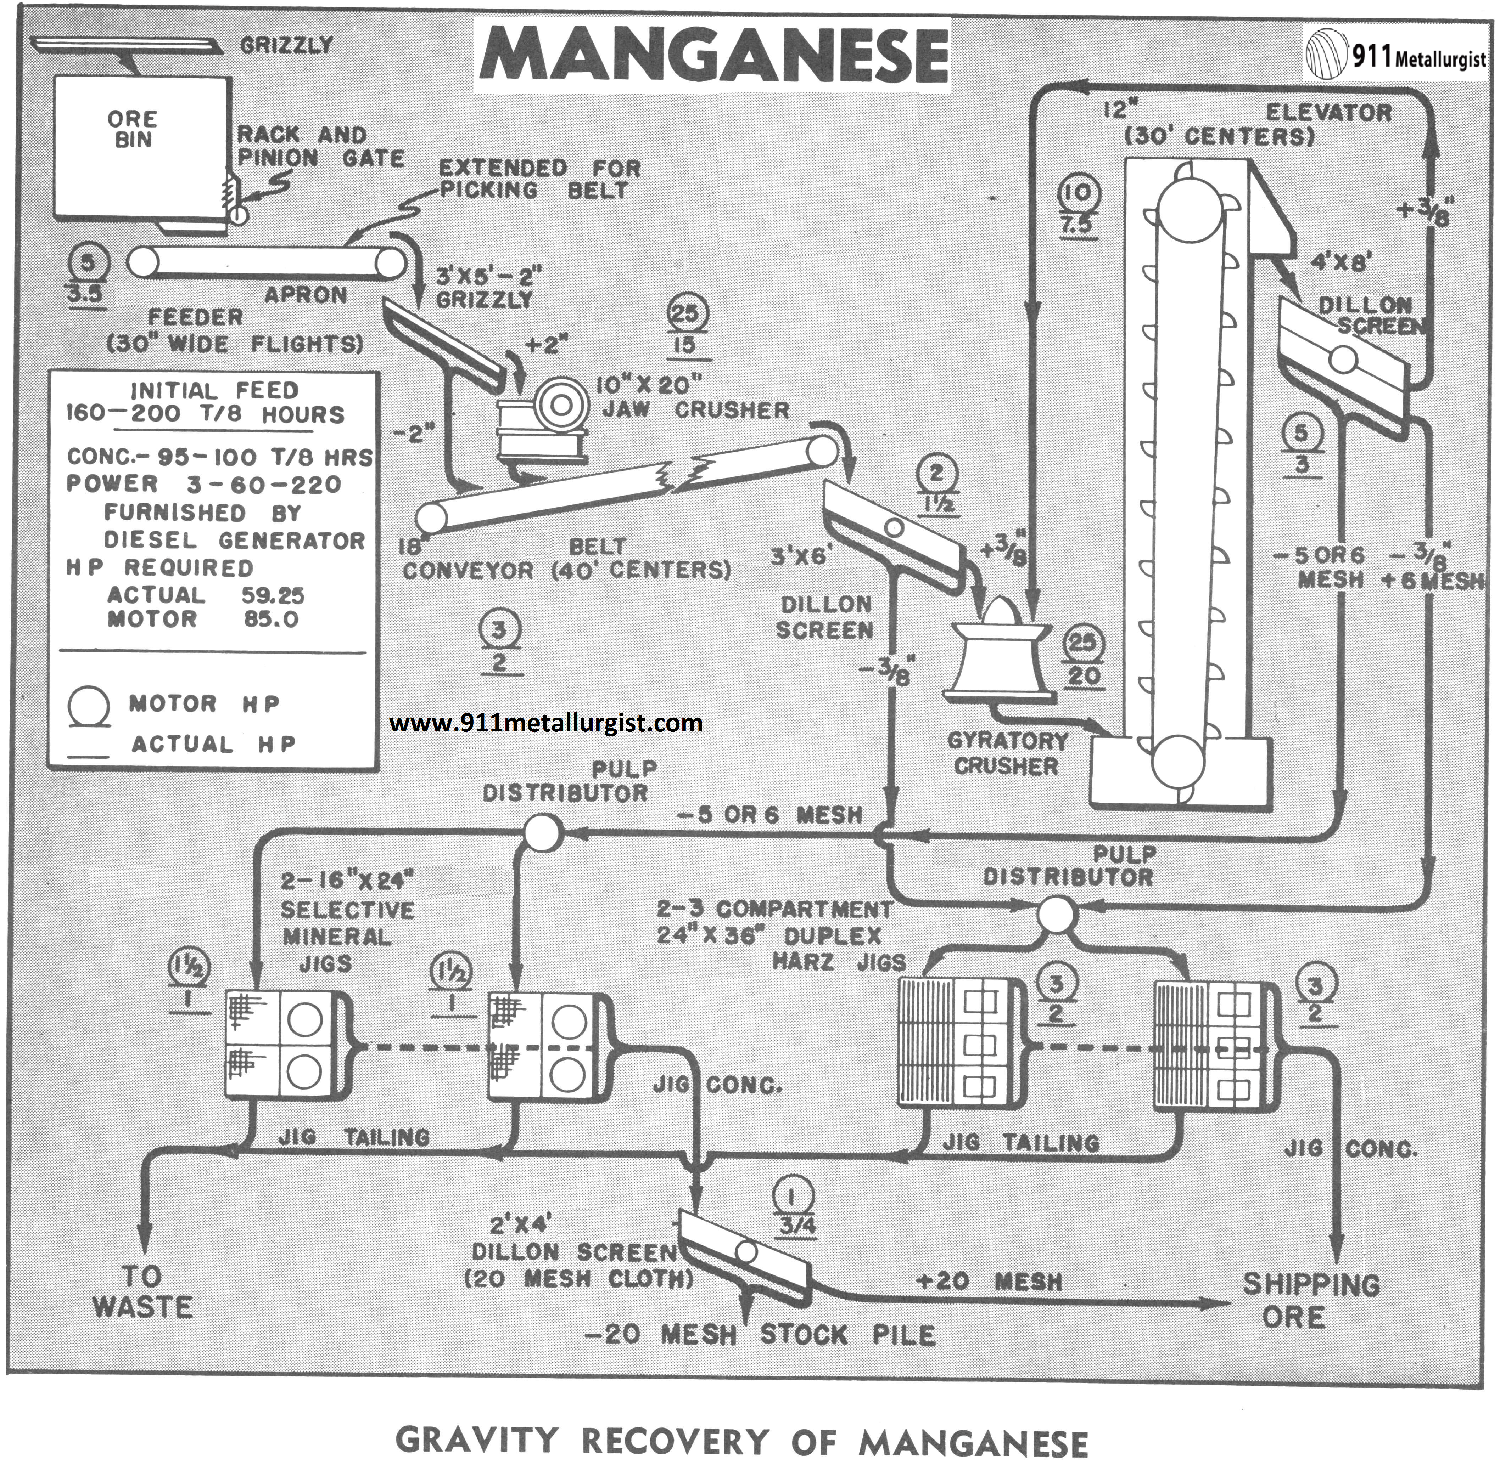 Gravity Recovery of Manganese